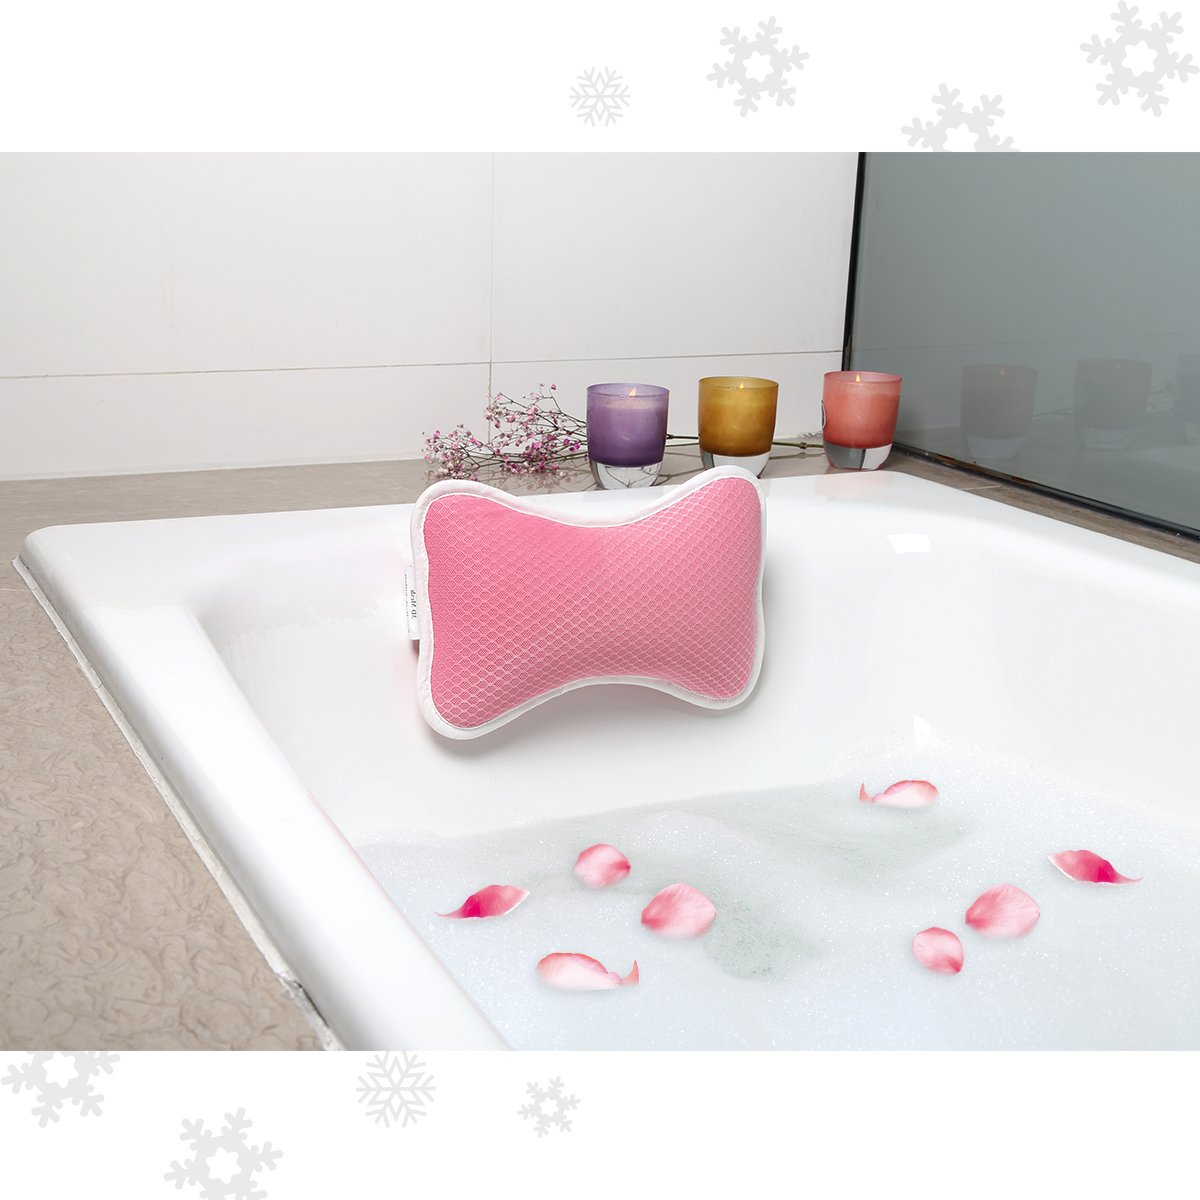 Bath Pillow Spa Pillow Anti Bacterial Luxurious Cushion, 2 Strong Suction Cups, Home Spa Non Slip Support for Bathtub, Antart